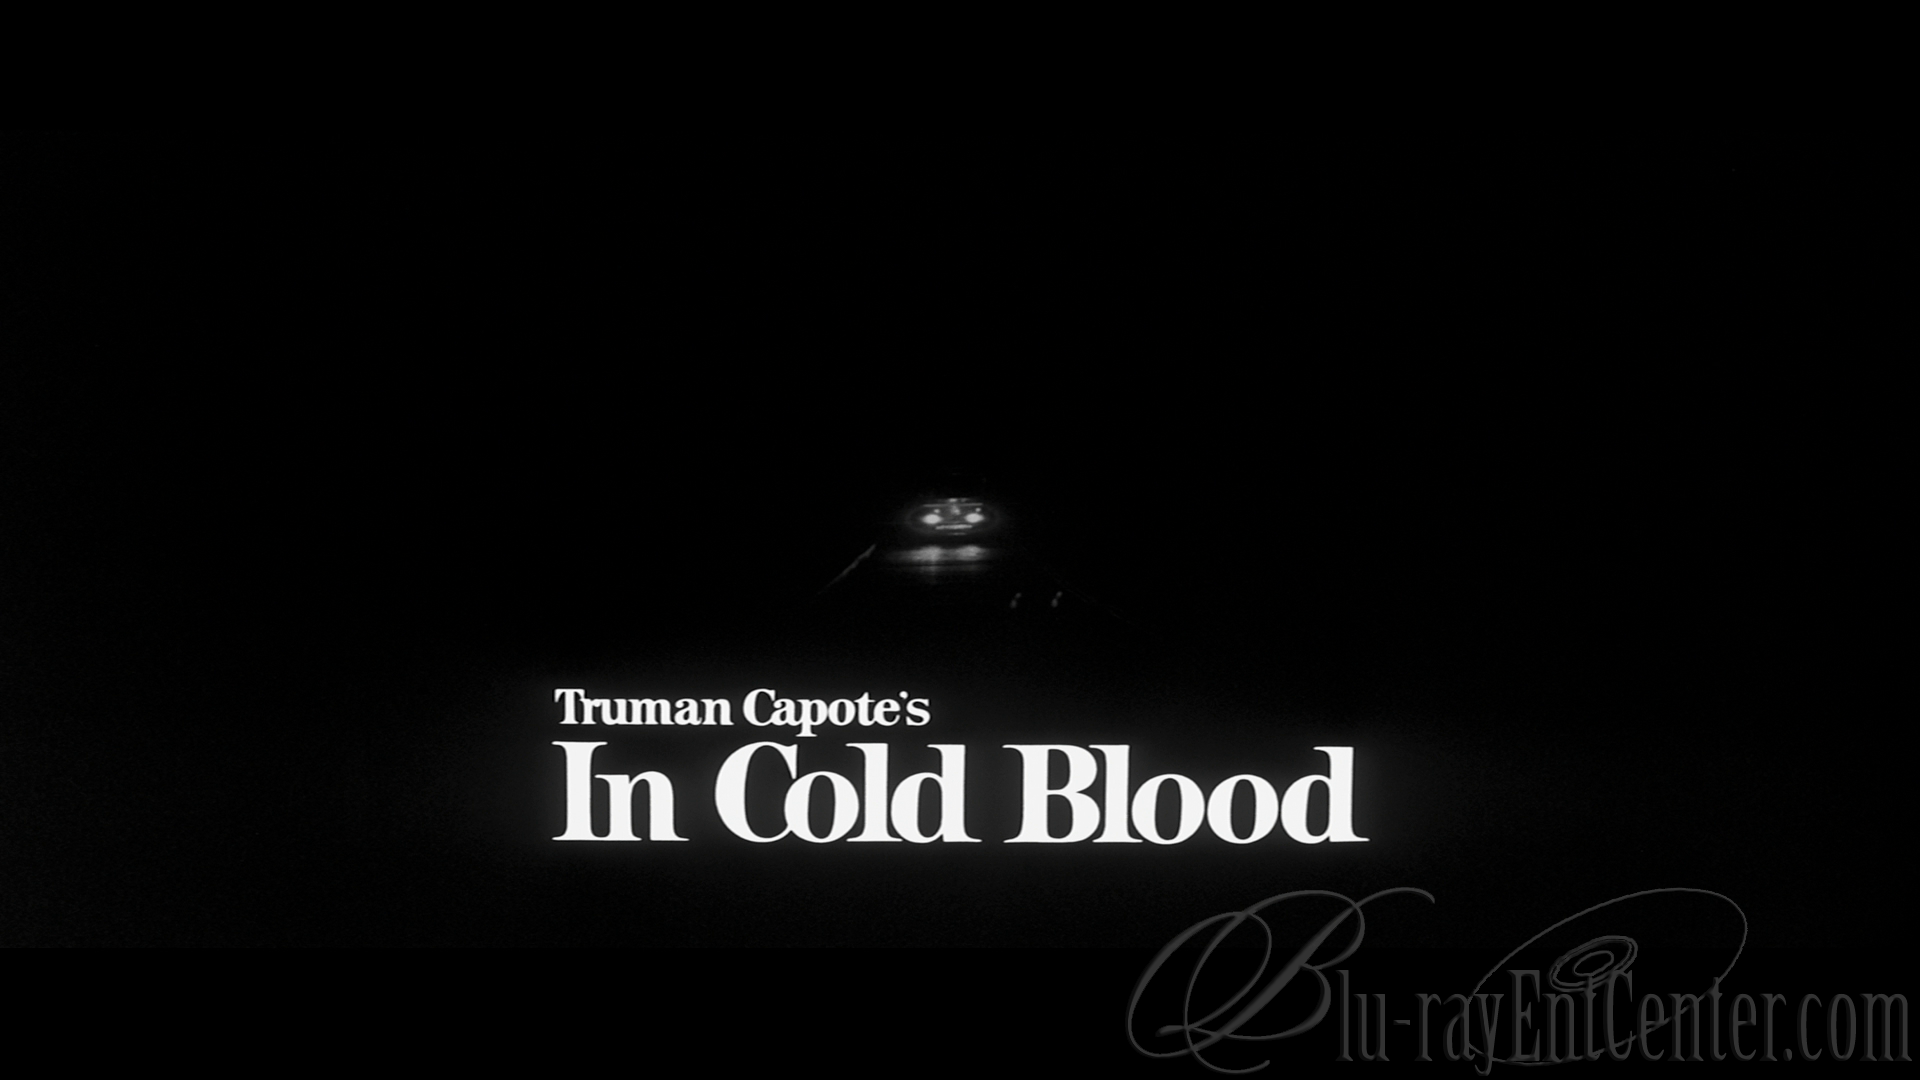 in cold blood essays Free capote in cold blood papers, essays, and research papers.